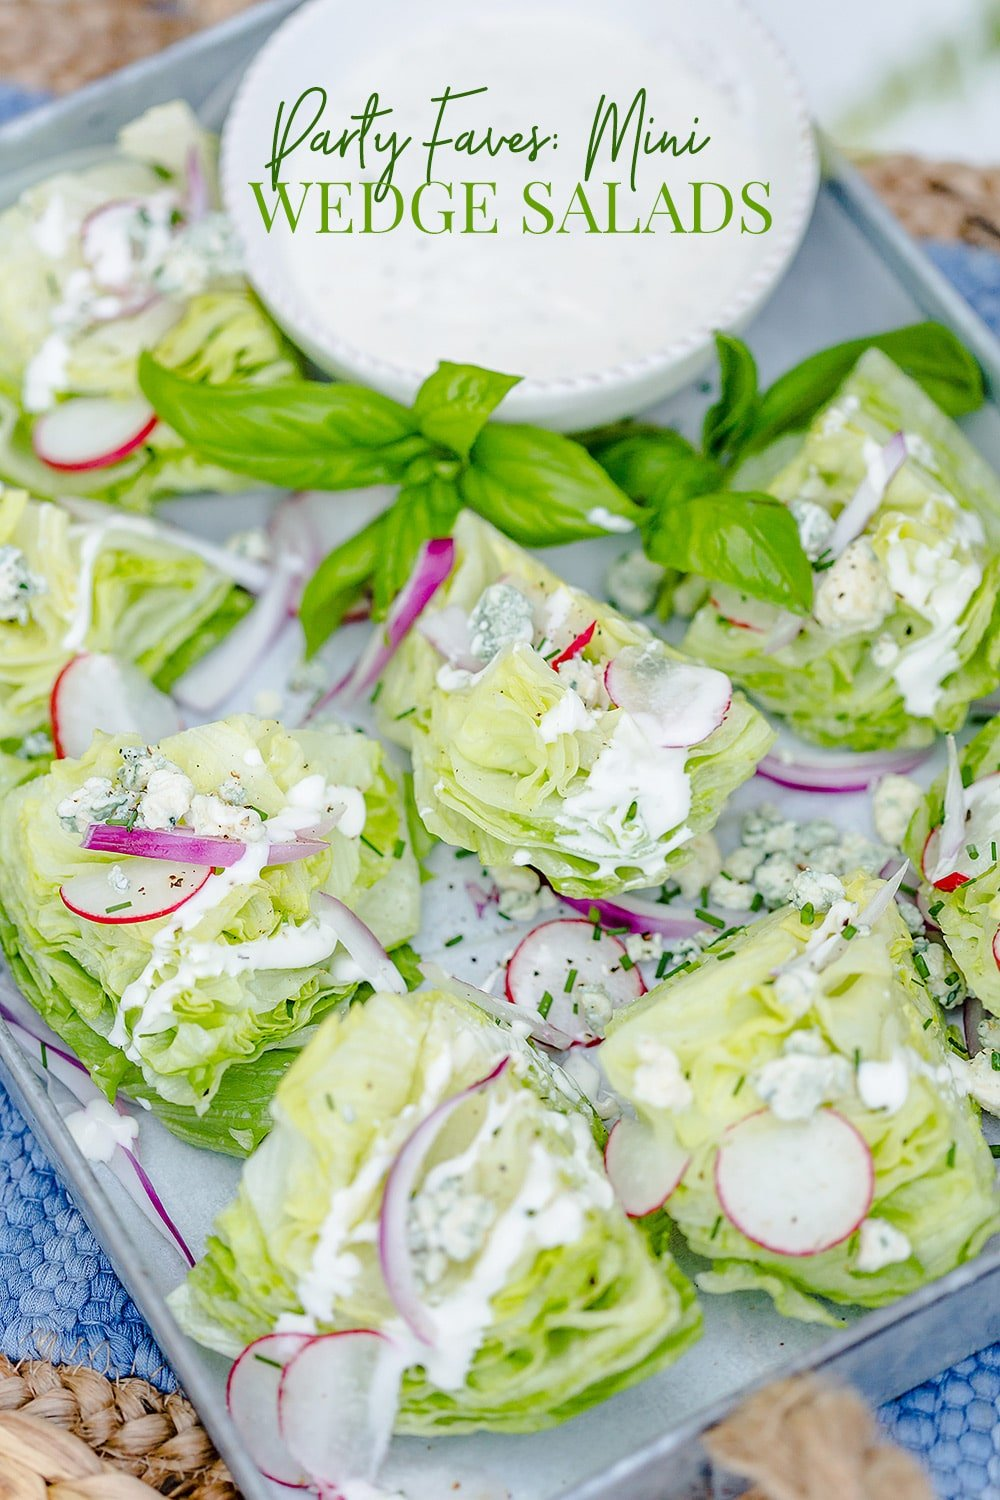 Mini Wedge Salads